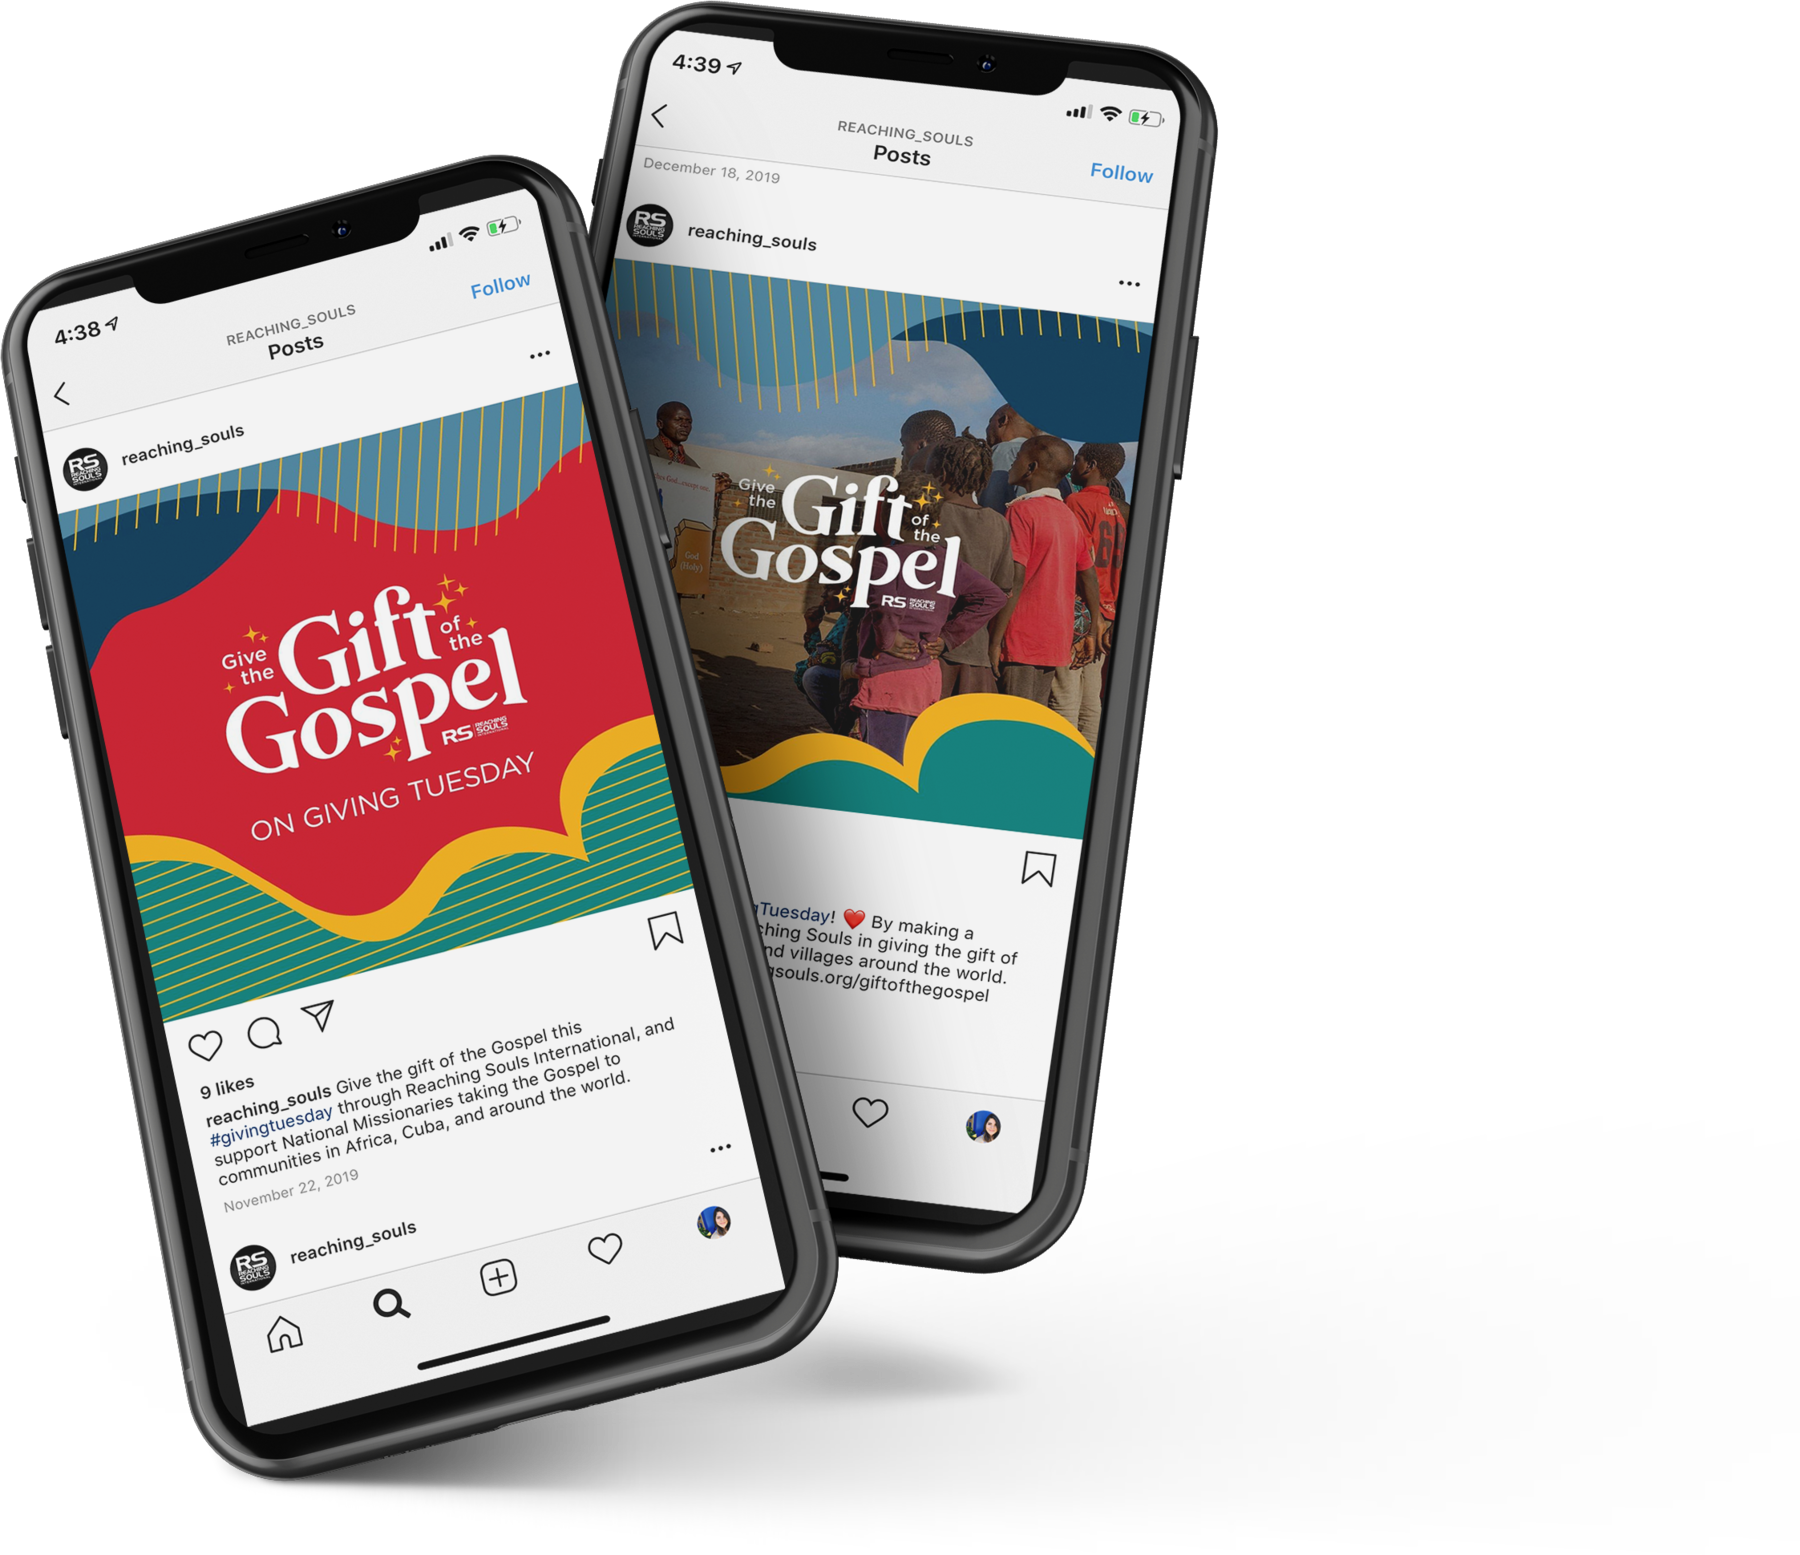 """A mockup of the """"Give the Gift of the Gospel"""" social media campaign, which includes an Instagram feed"""